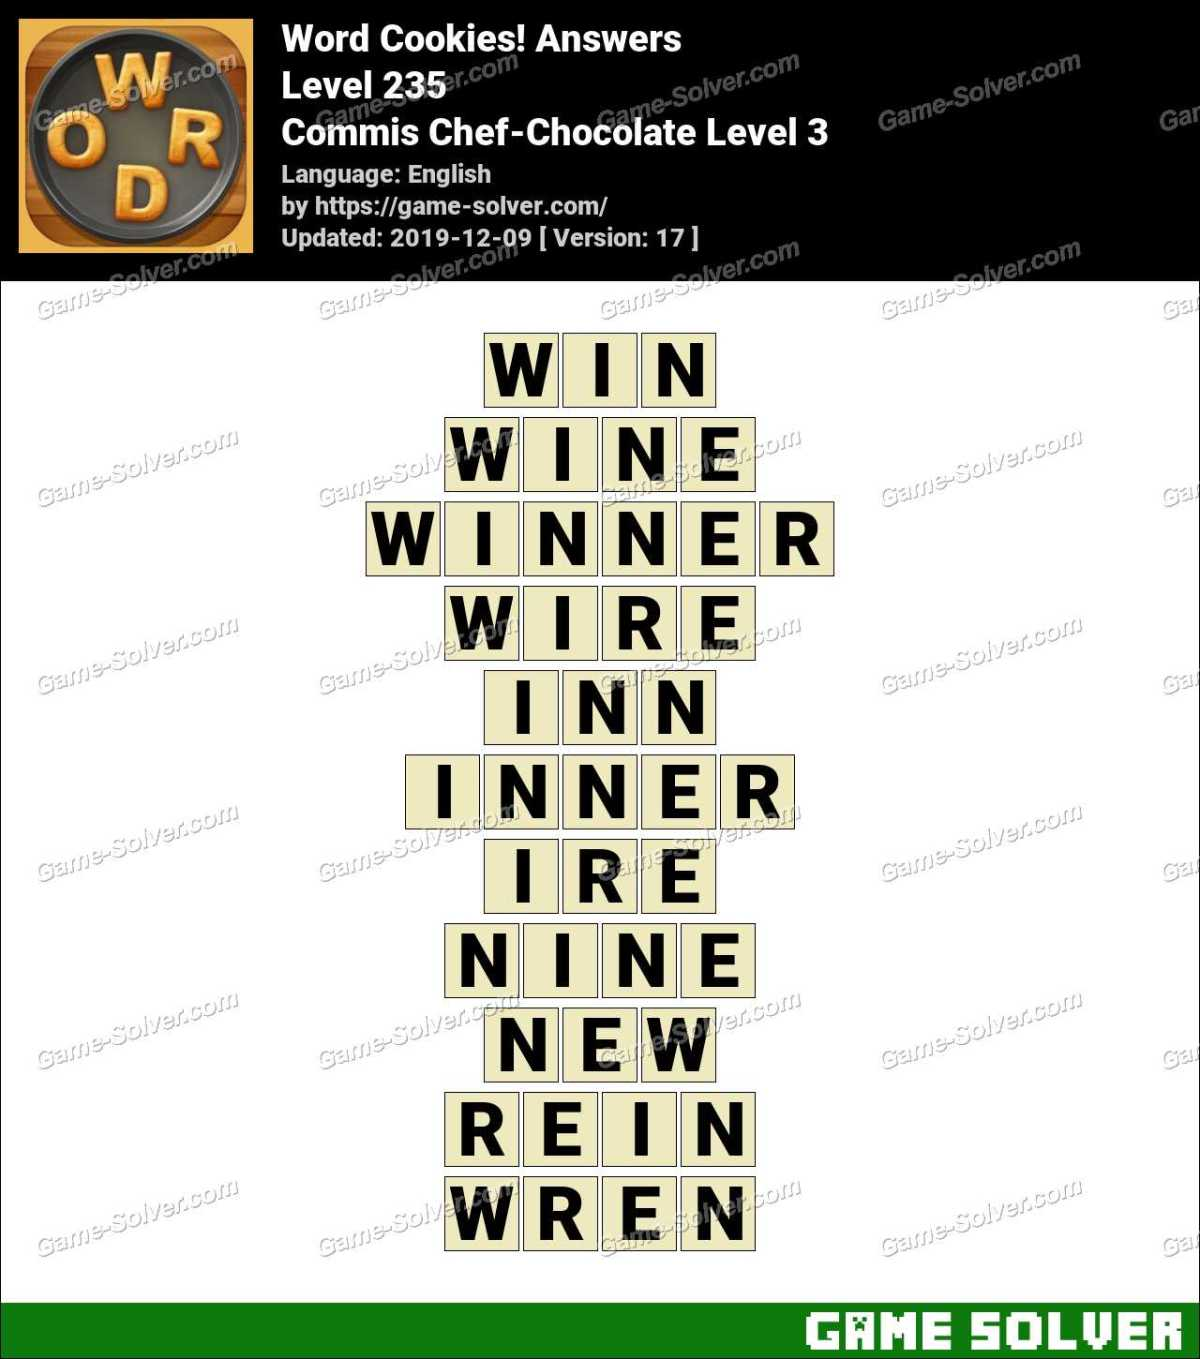 Word Cookies Commis Chef-Chocolate Level 3 Answers